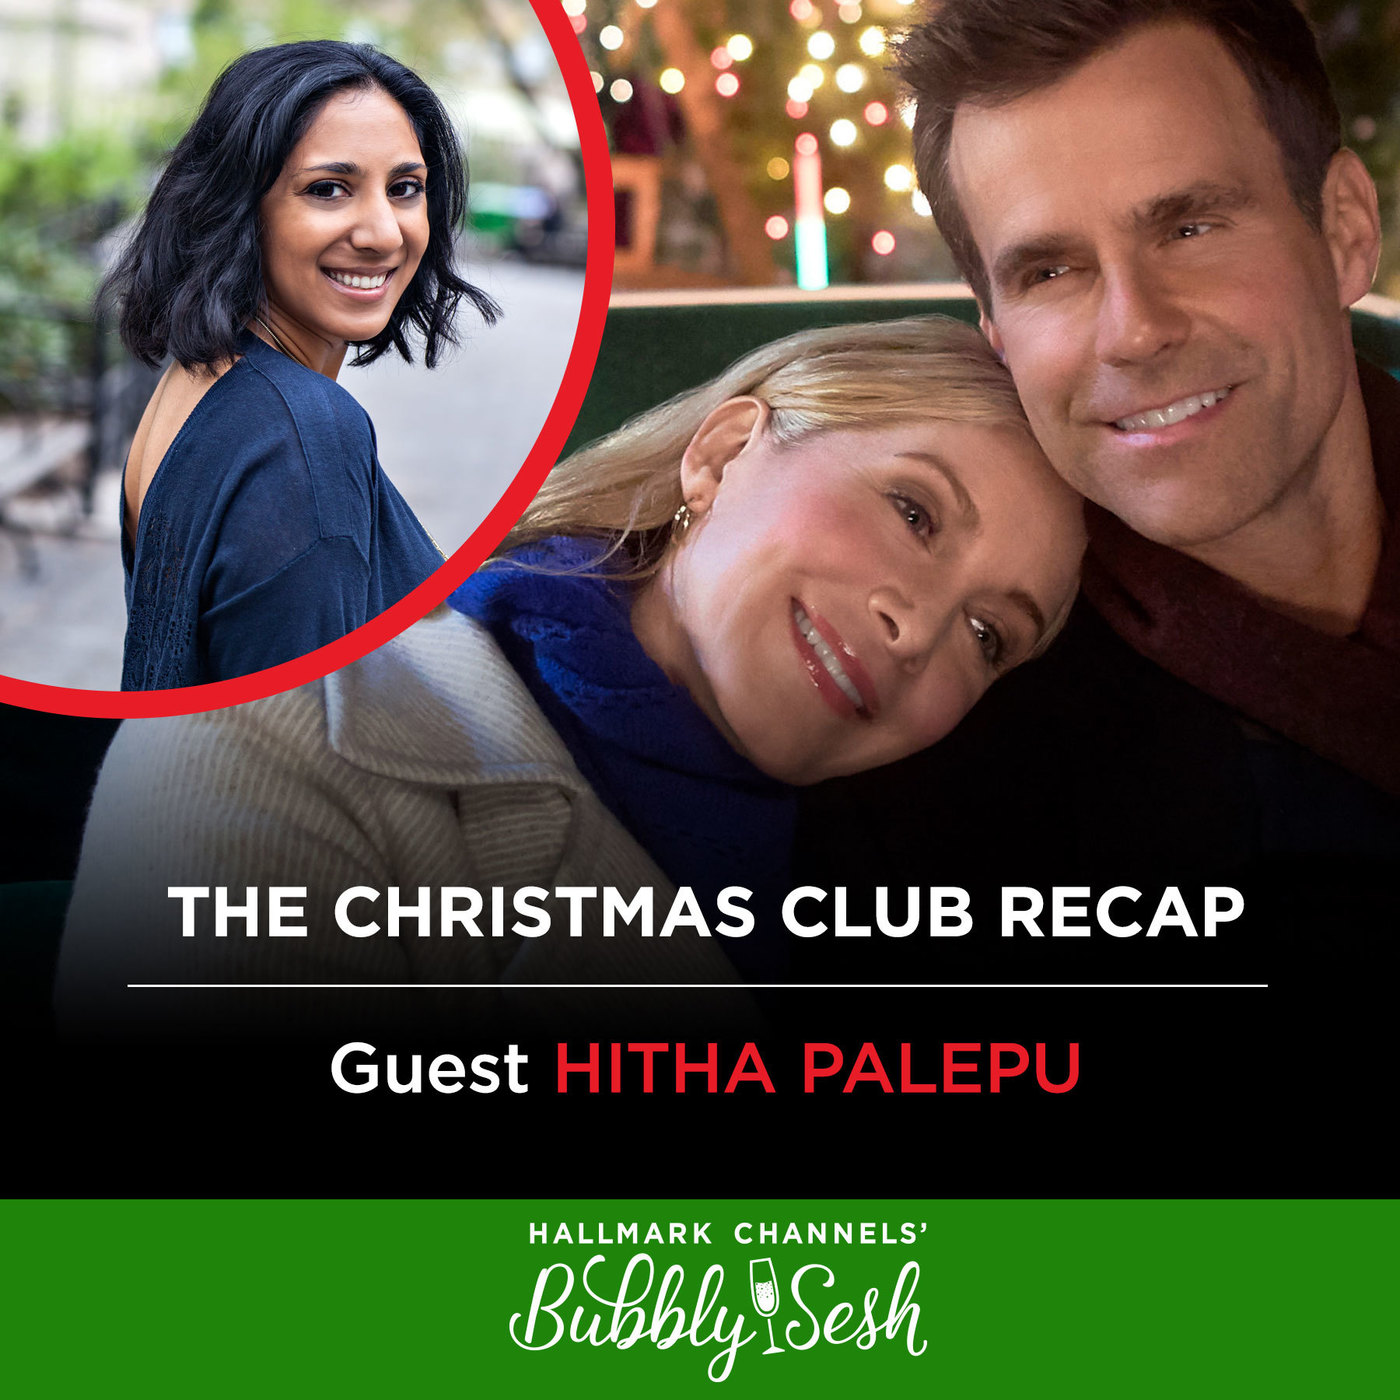 The Christmas Club Recap with Hitha Palepu